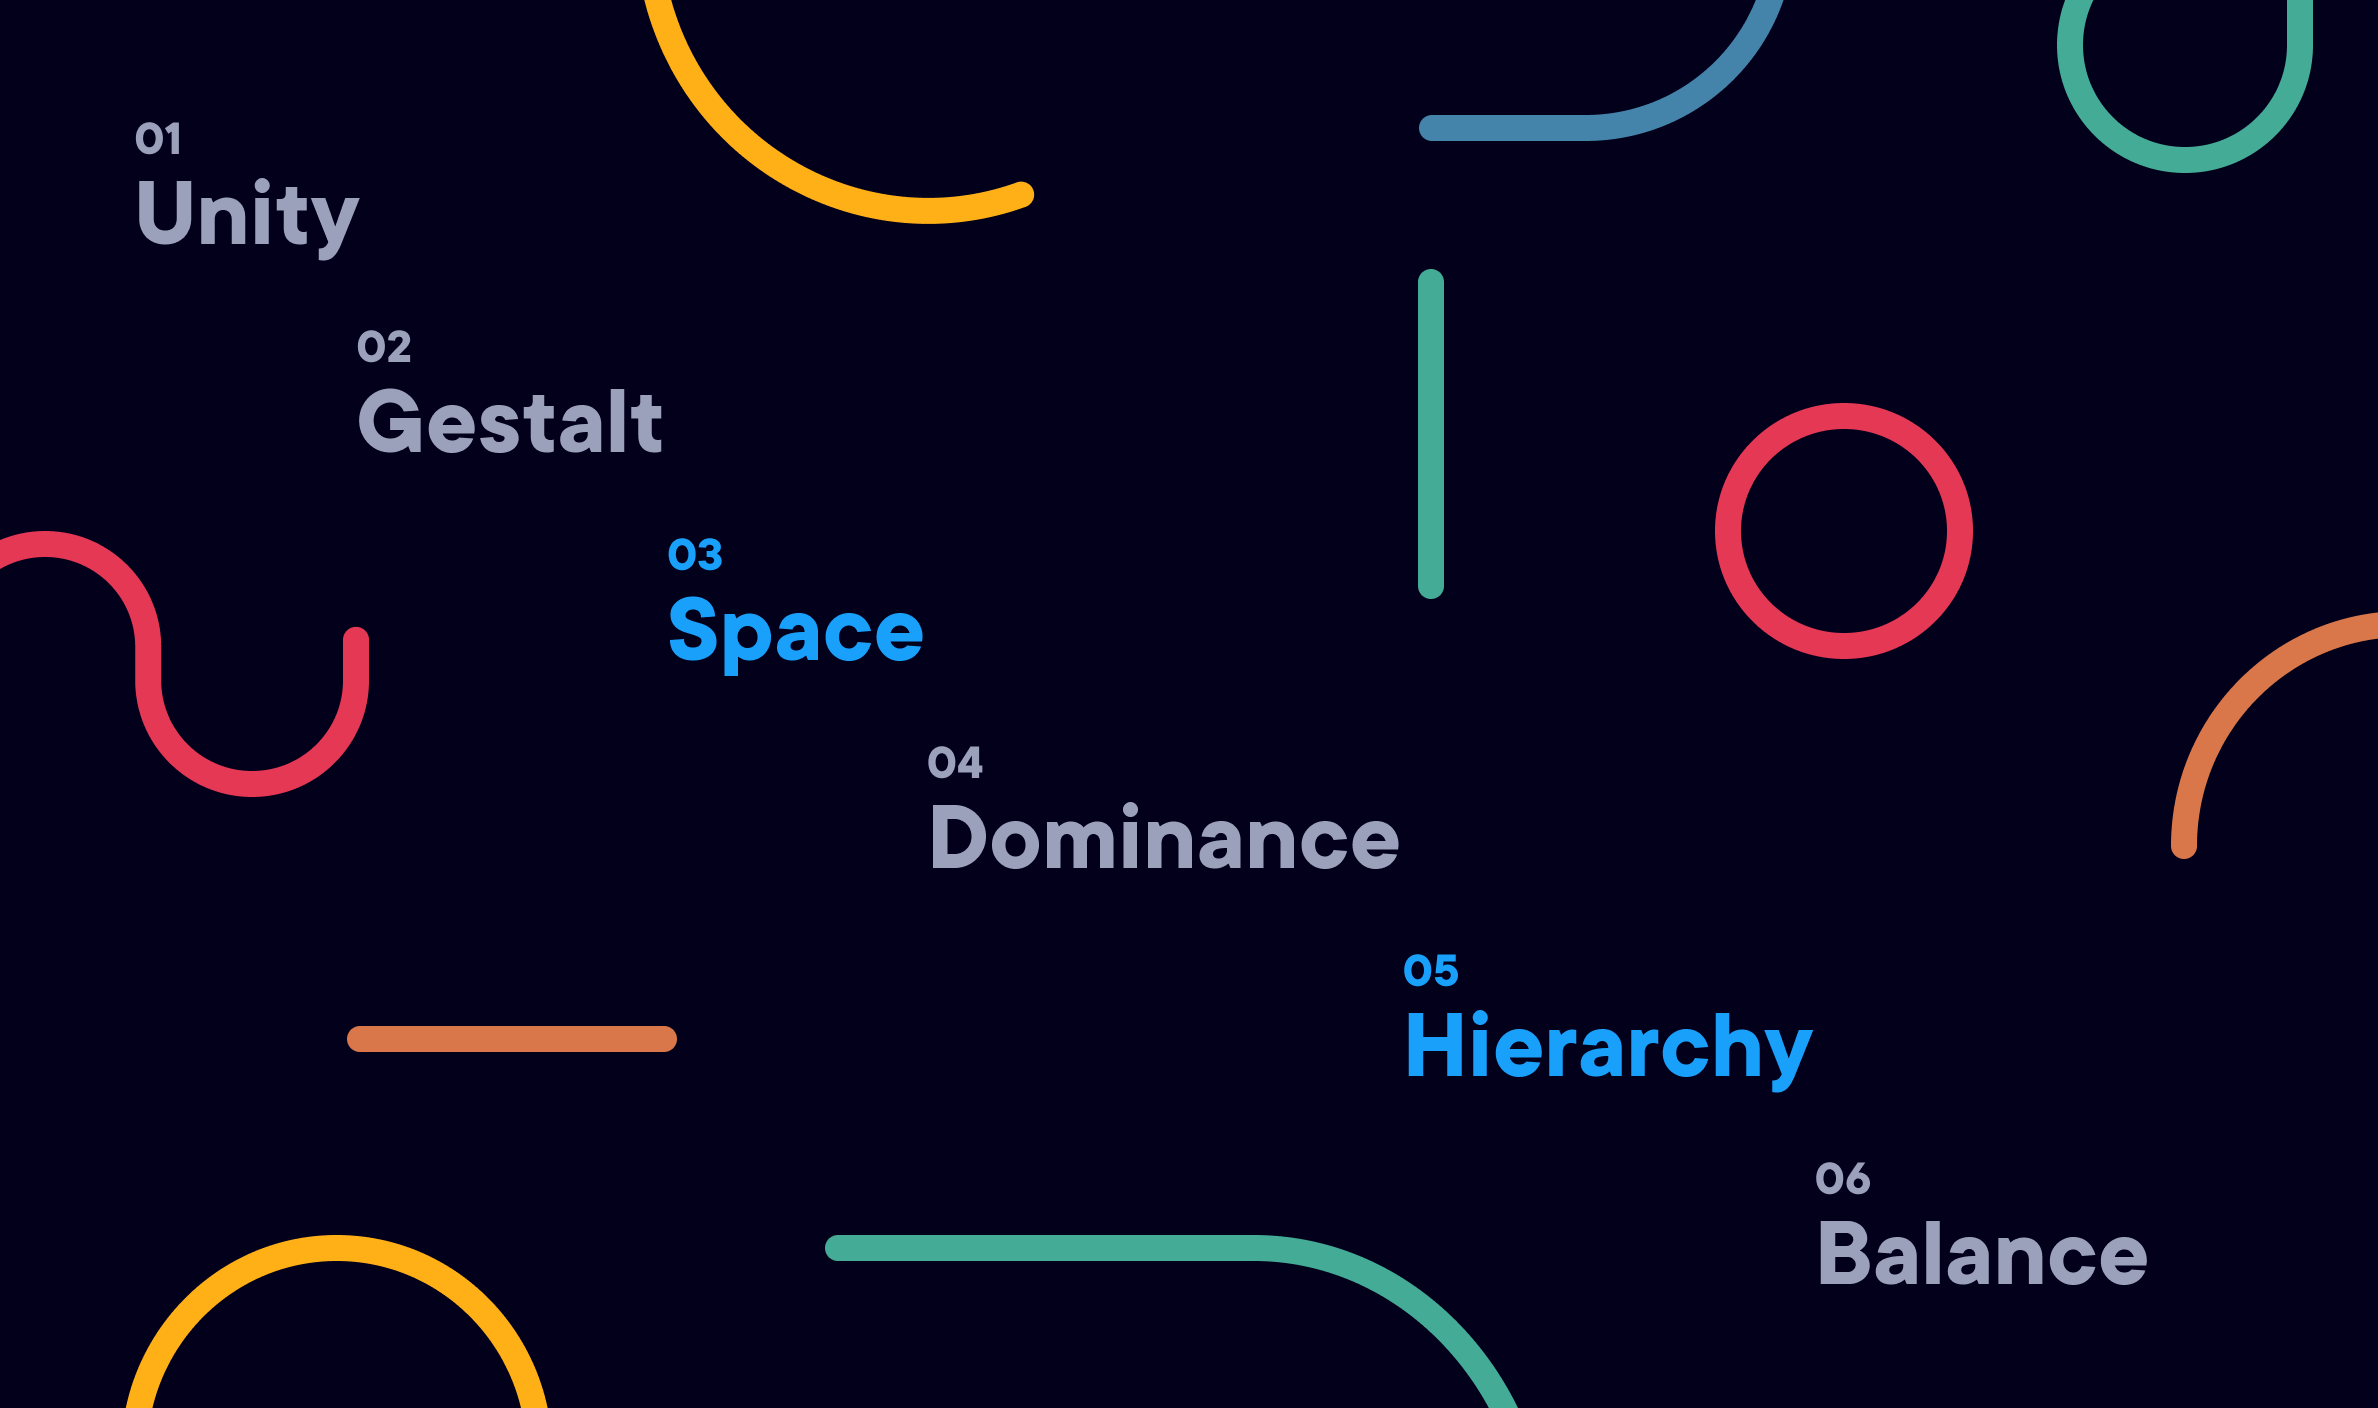 The six principles of visual design (space and hierarchy highlighted) against a dark background surrounded by various shapes.